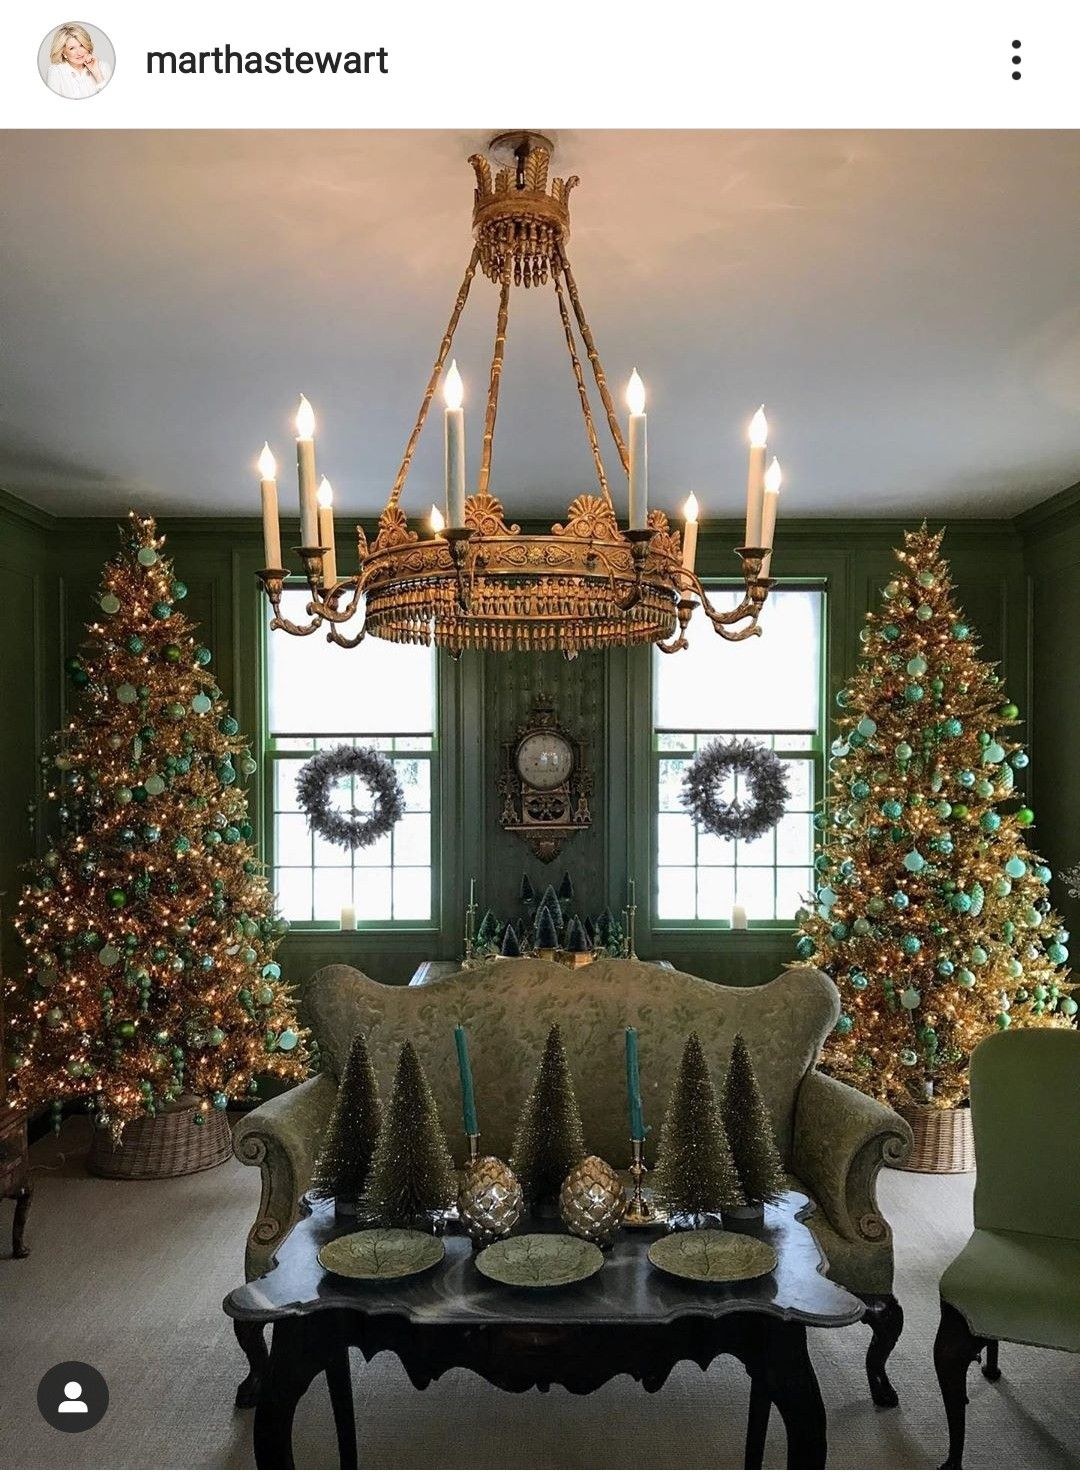 Martha Stewart Christmas Trees 2020 Pin by Celeste Allen on 7 trees & counting in 2020 | Martha